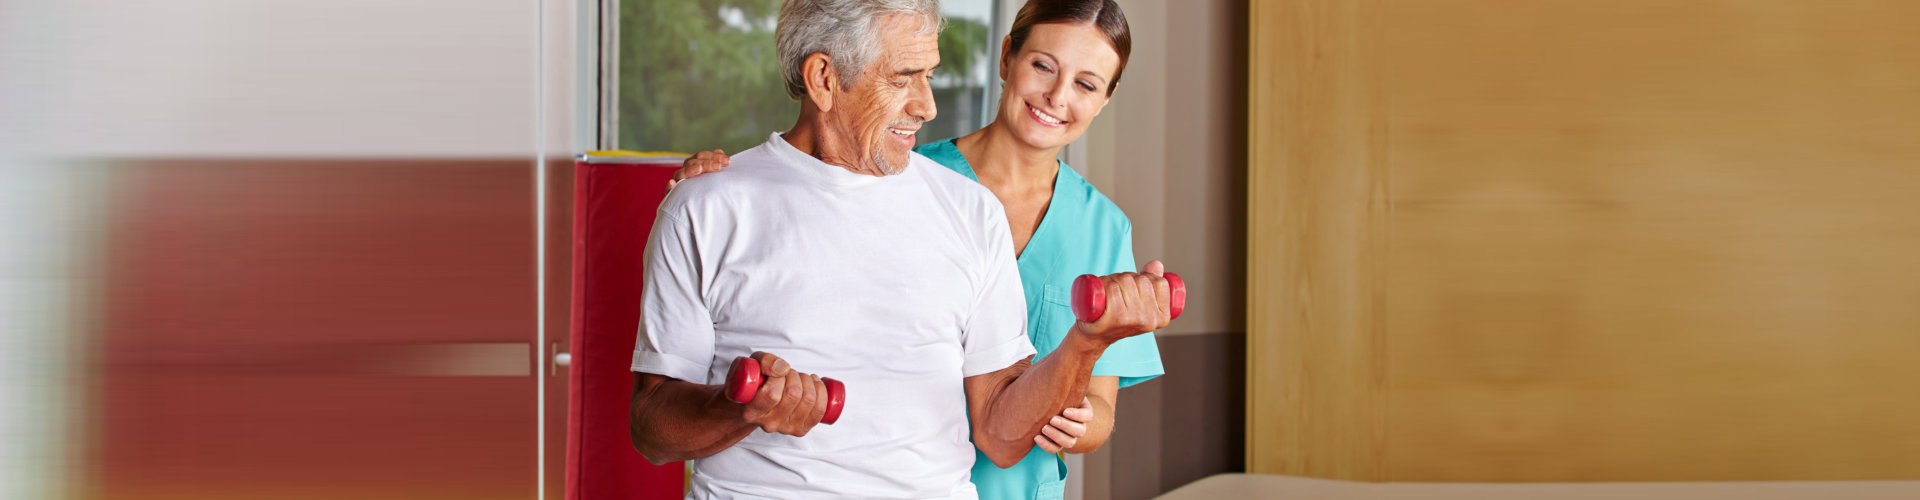 physical therapist assisting the elderly